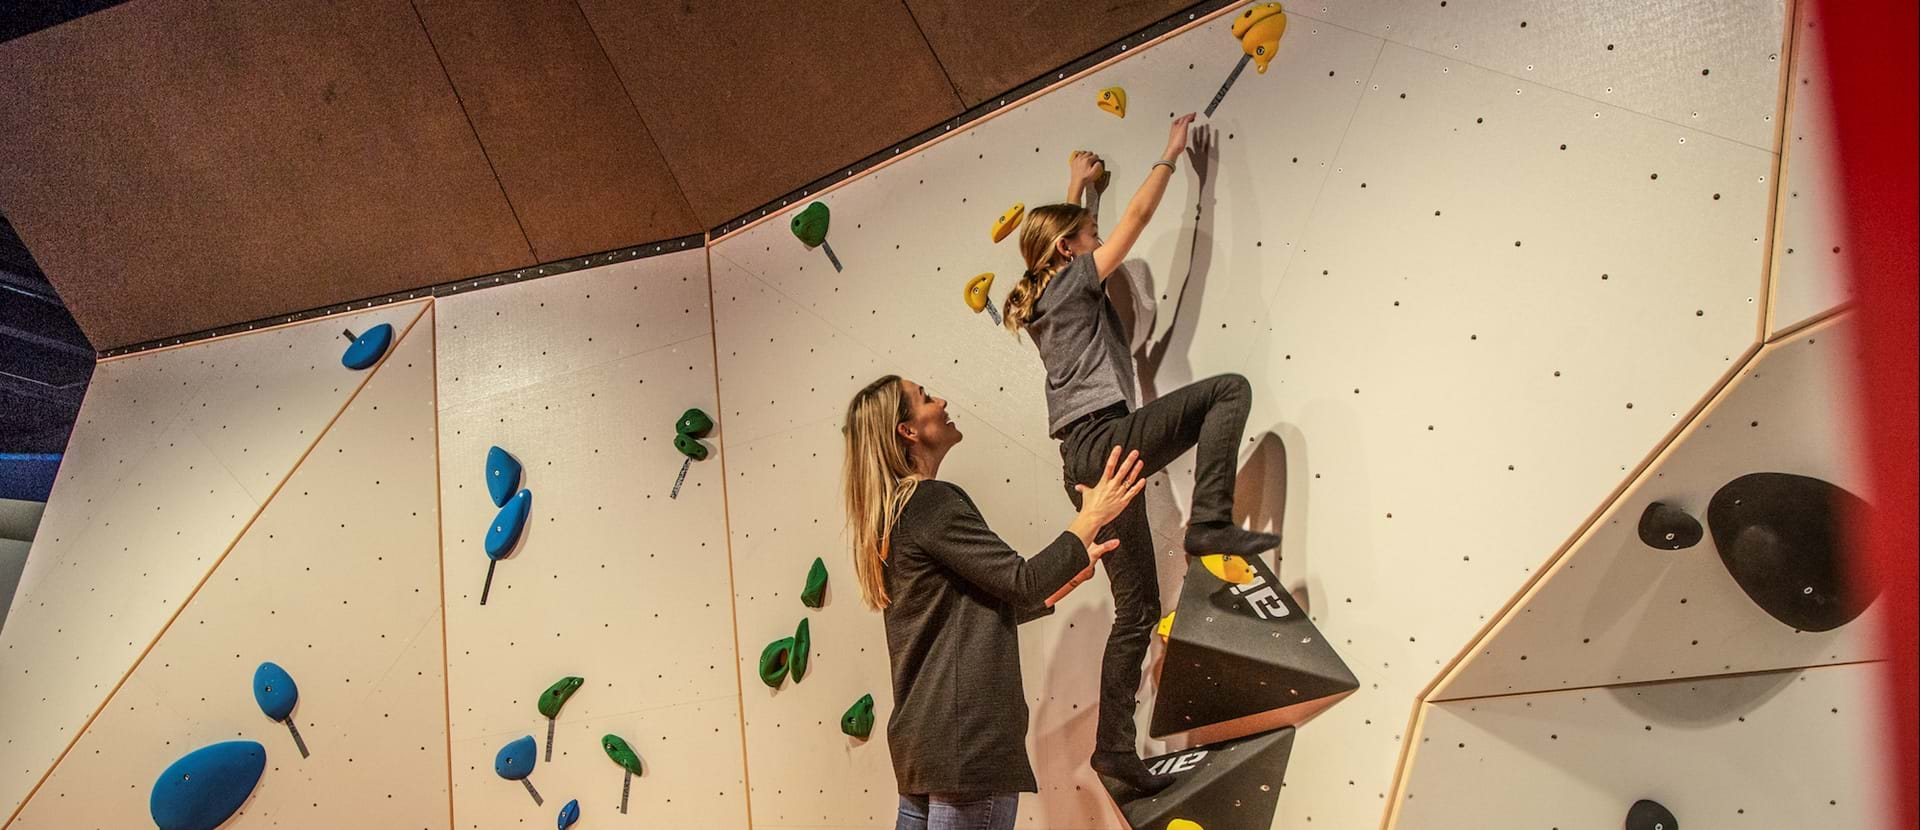 Testcentret Bouldering - Foto: David Trood